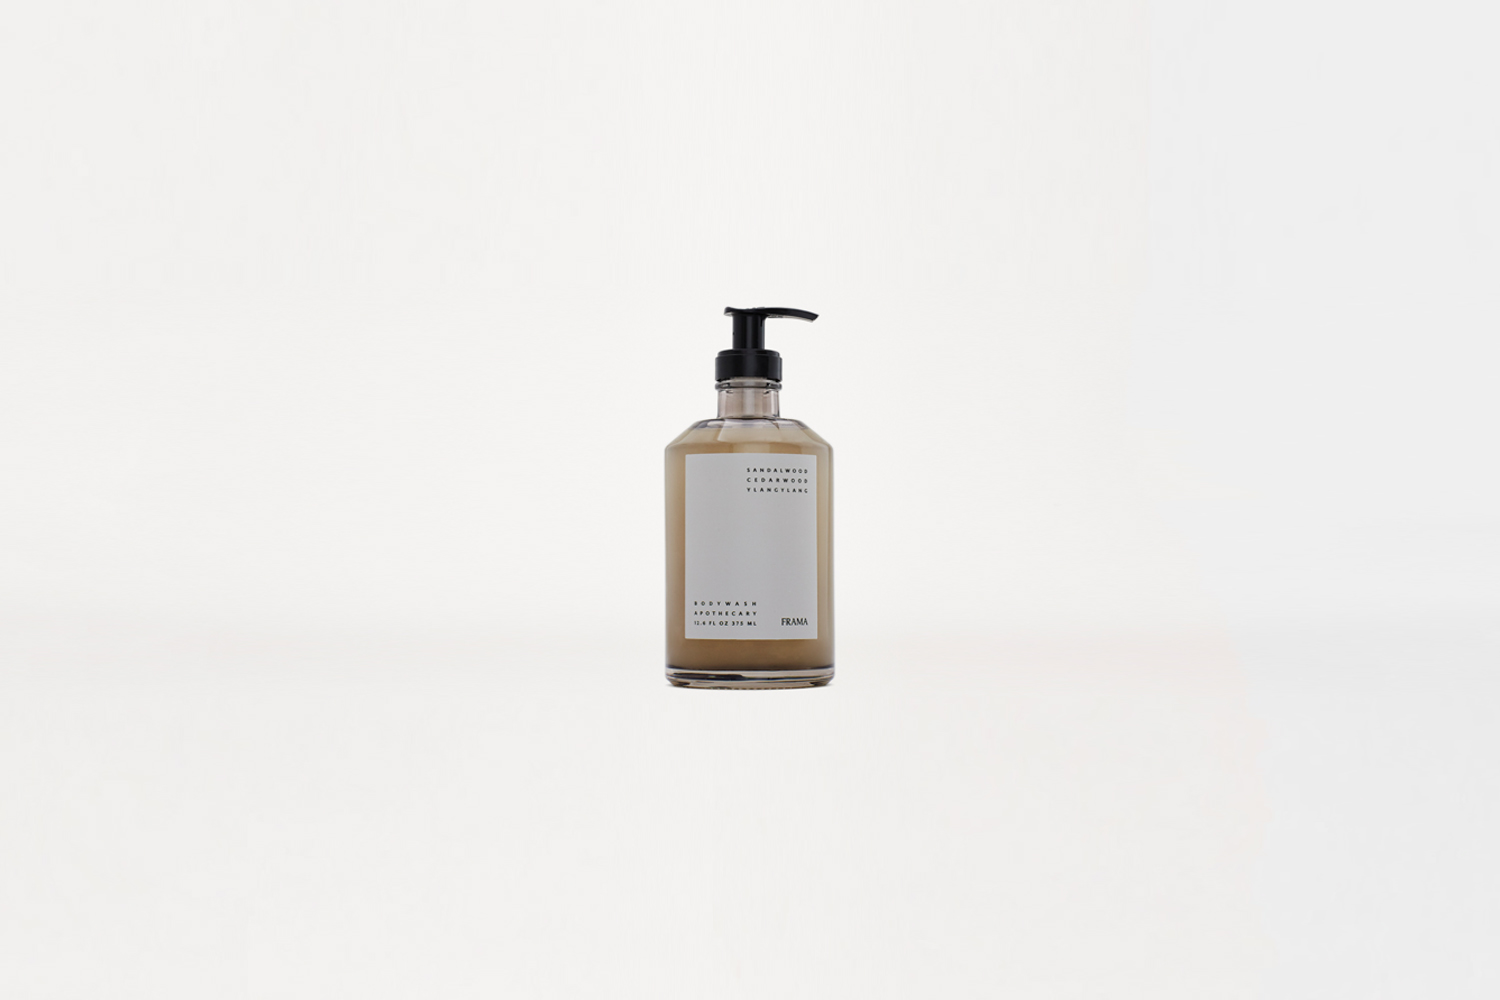 the frama apothecary body wash in a scent of sandalwood, cedar wood, and ylang  22